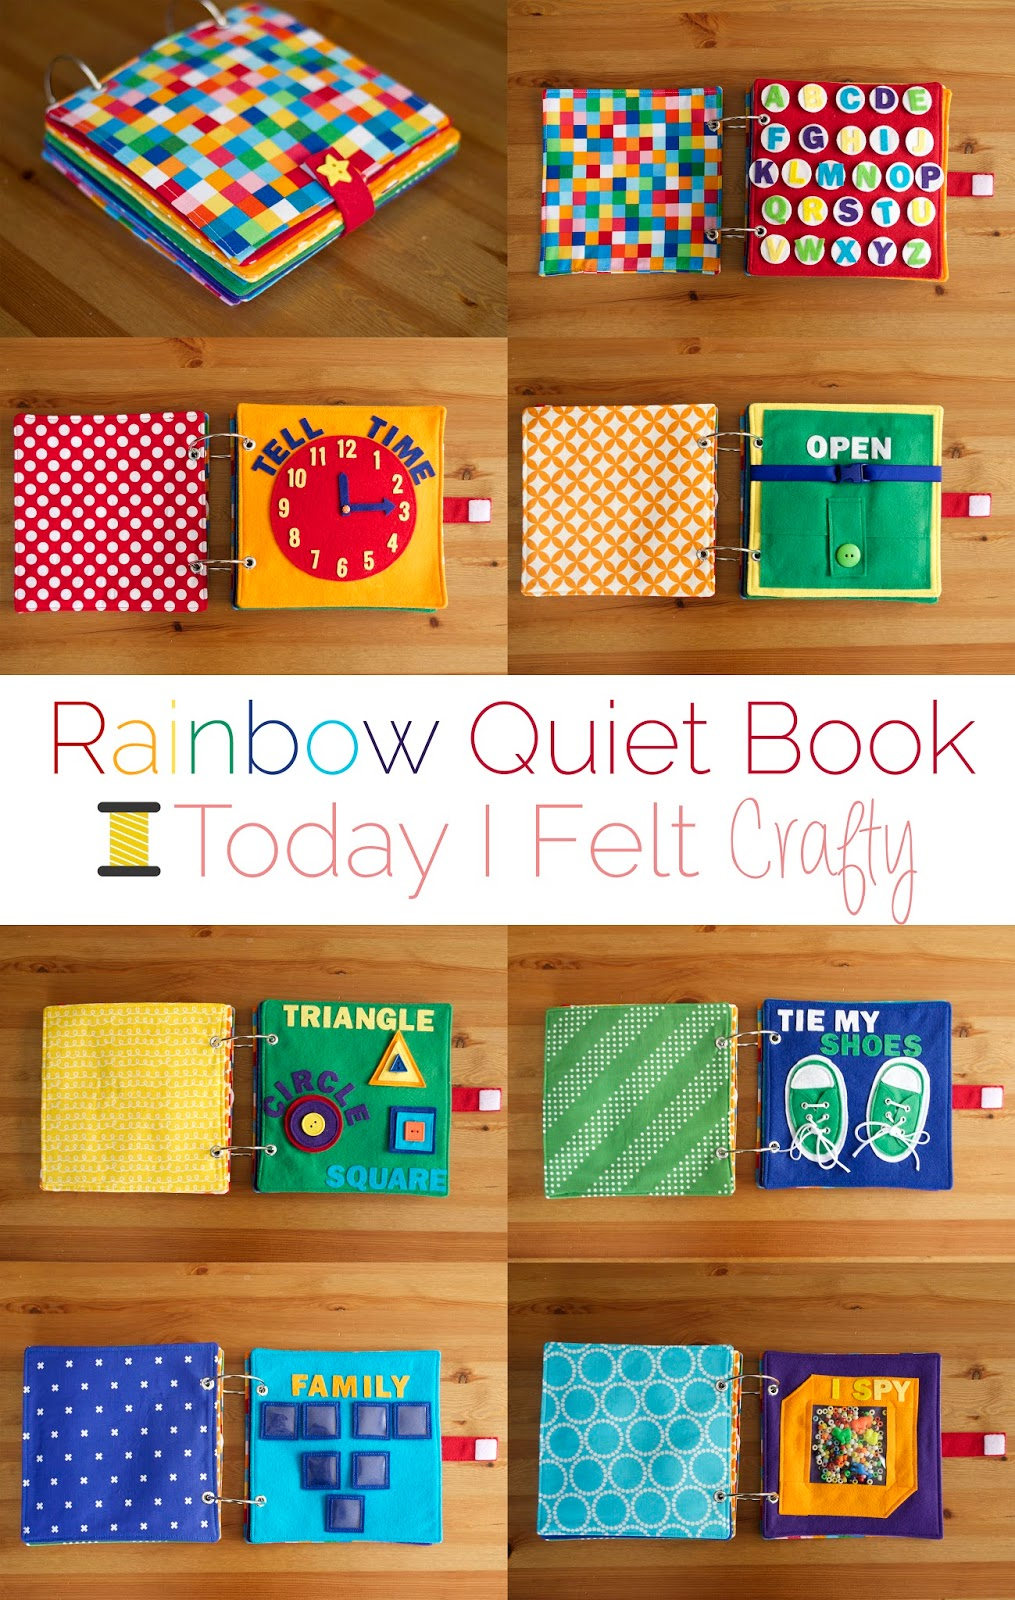 Rainbow Book Cover Diy ~ Rainbow quiet book